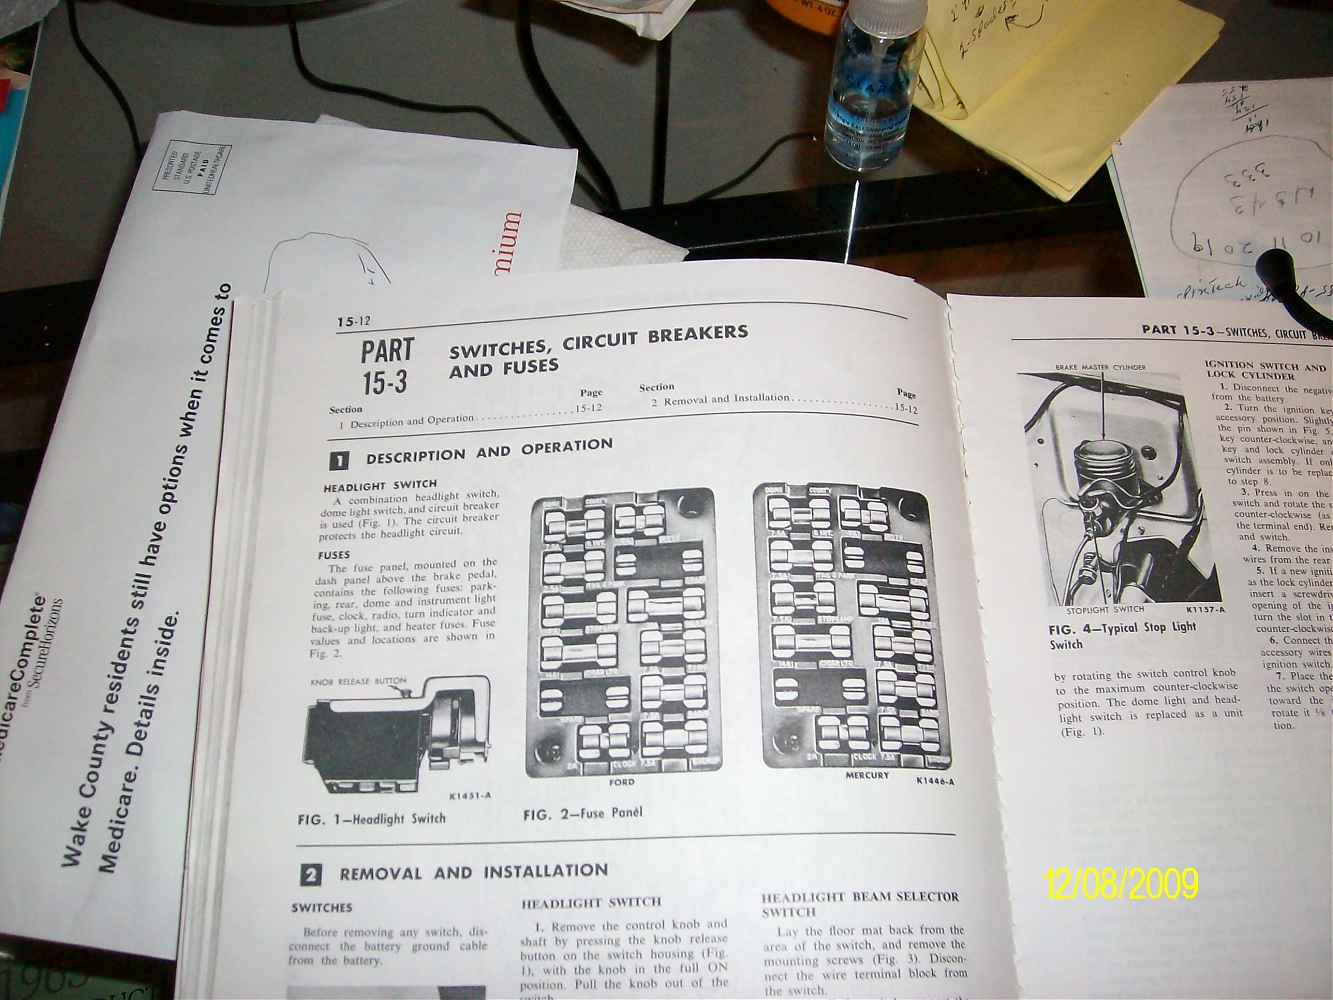 Ford Ba Fuse Box Diagram Wiring Data 1964 Futura Ranchero Schematics E 350 65